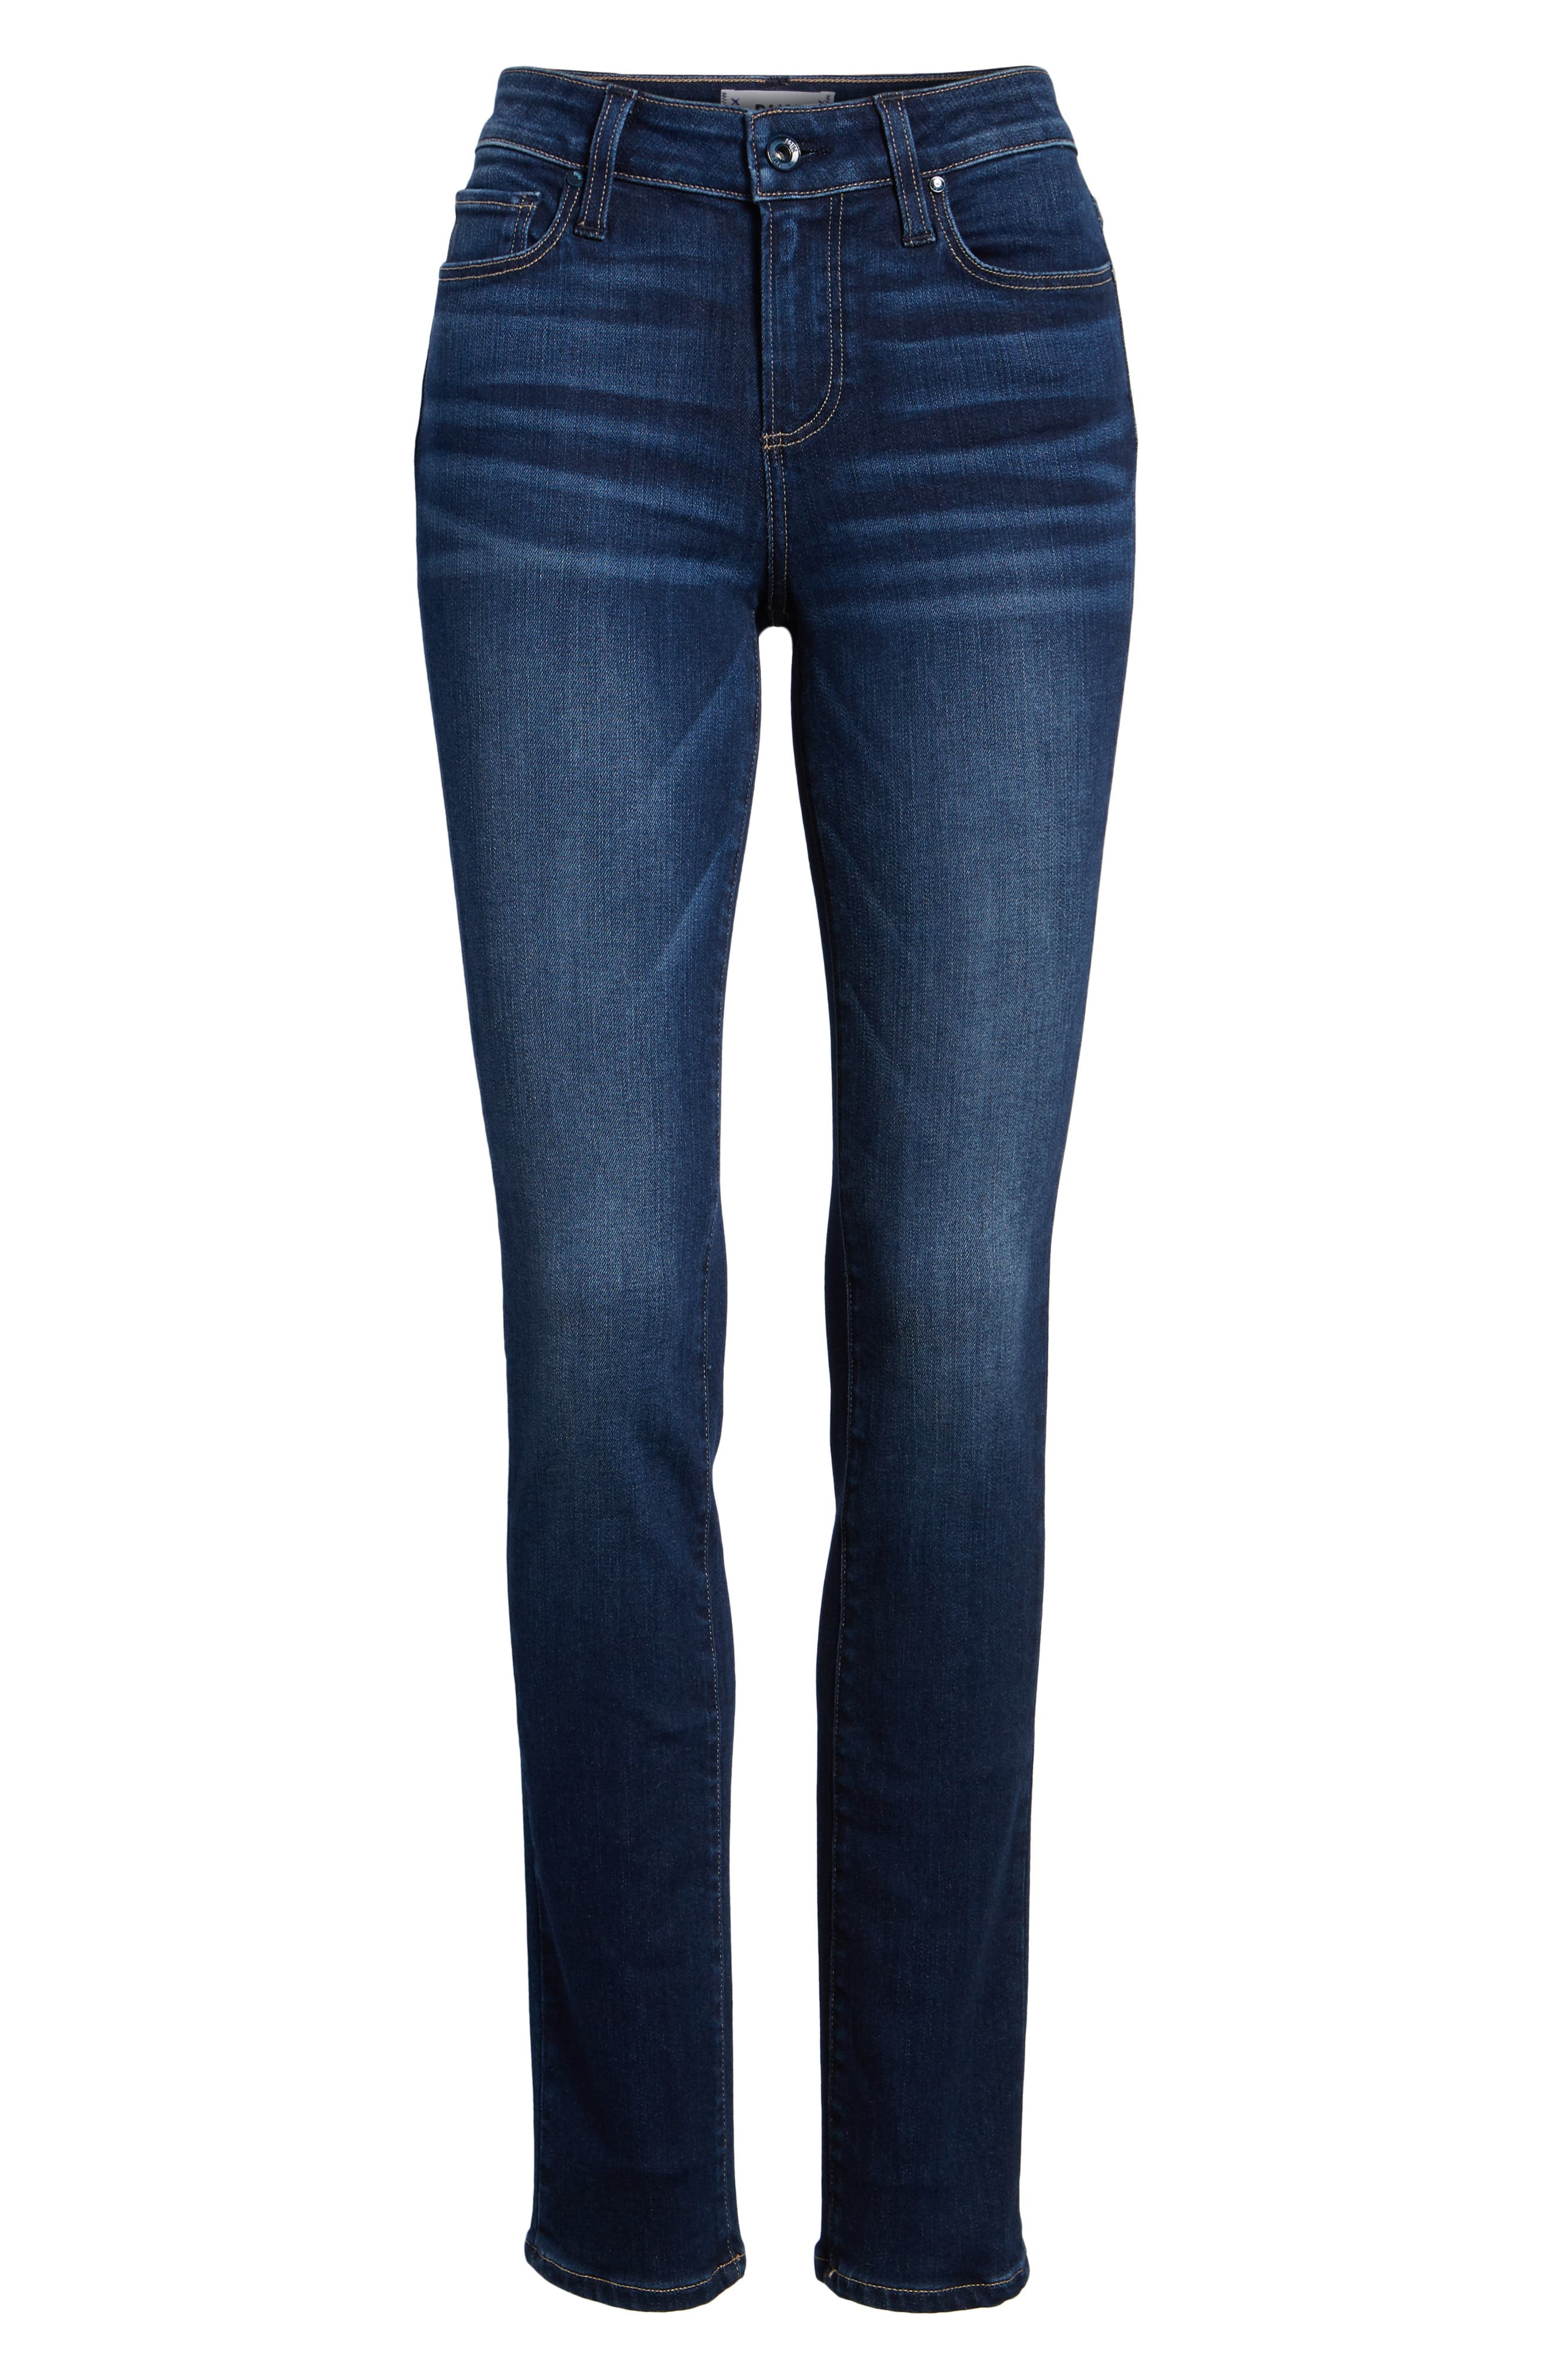 PAIGE, Skyline Skinny Jeans, Alternate thumbnail 7, color, IDLEWILD